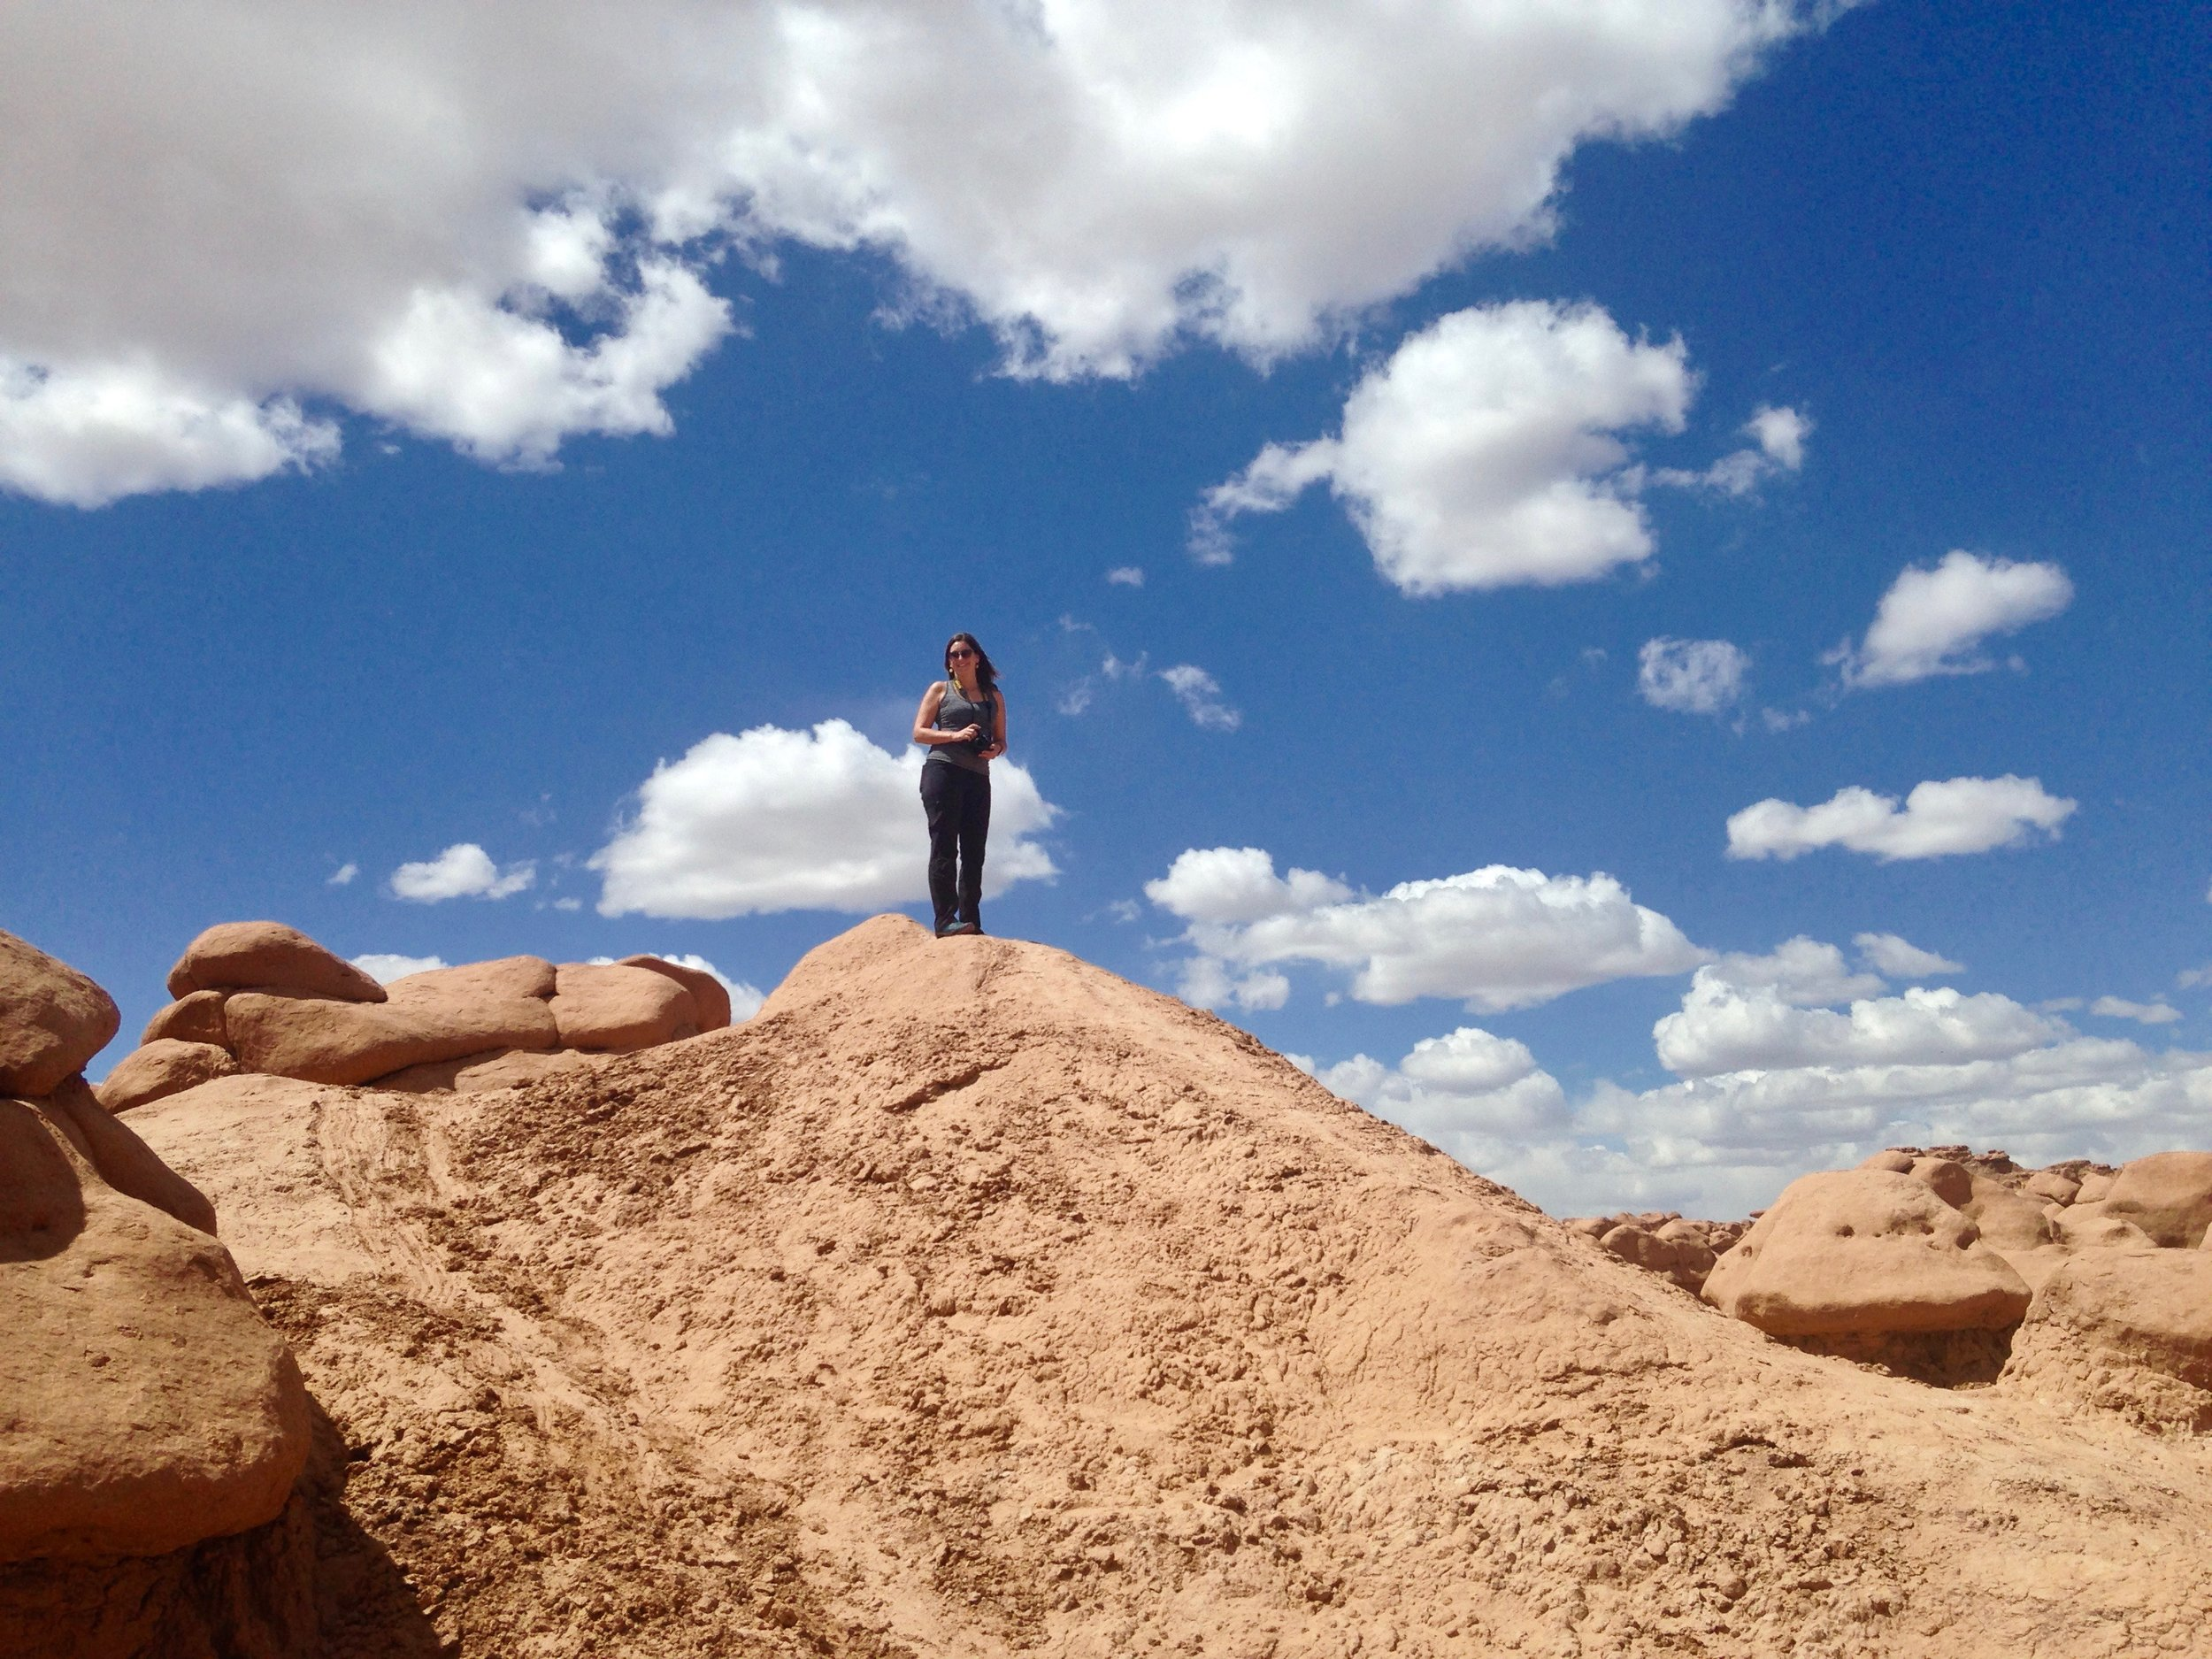 Me at Goblin Valley in 2017 (photo credit: Susan Jackson)